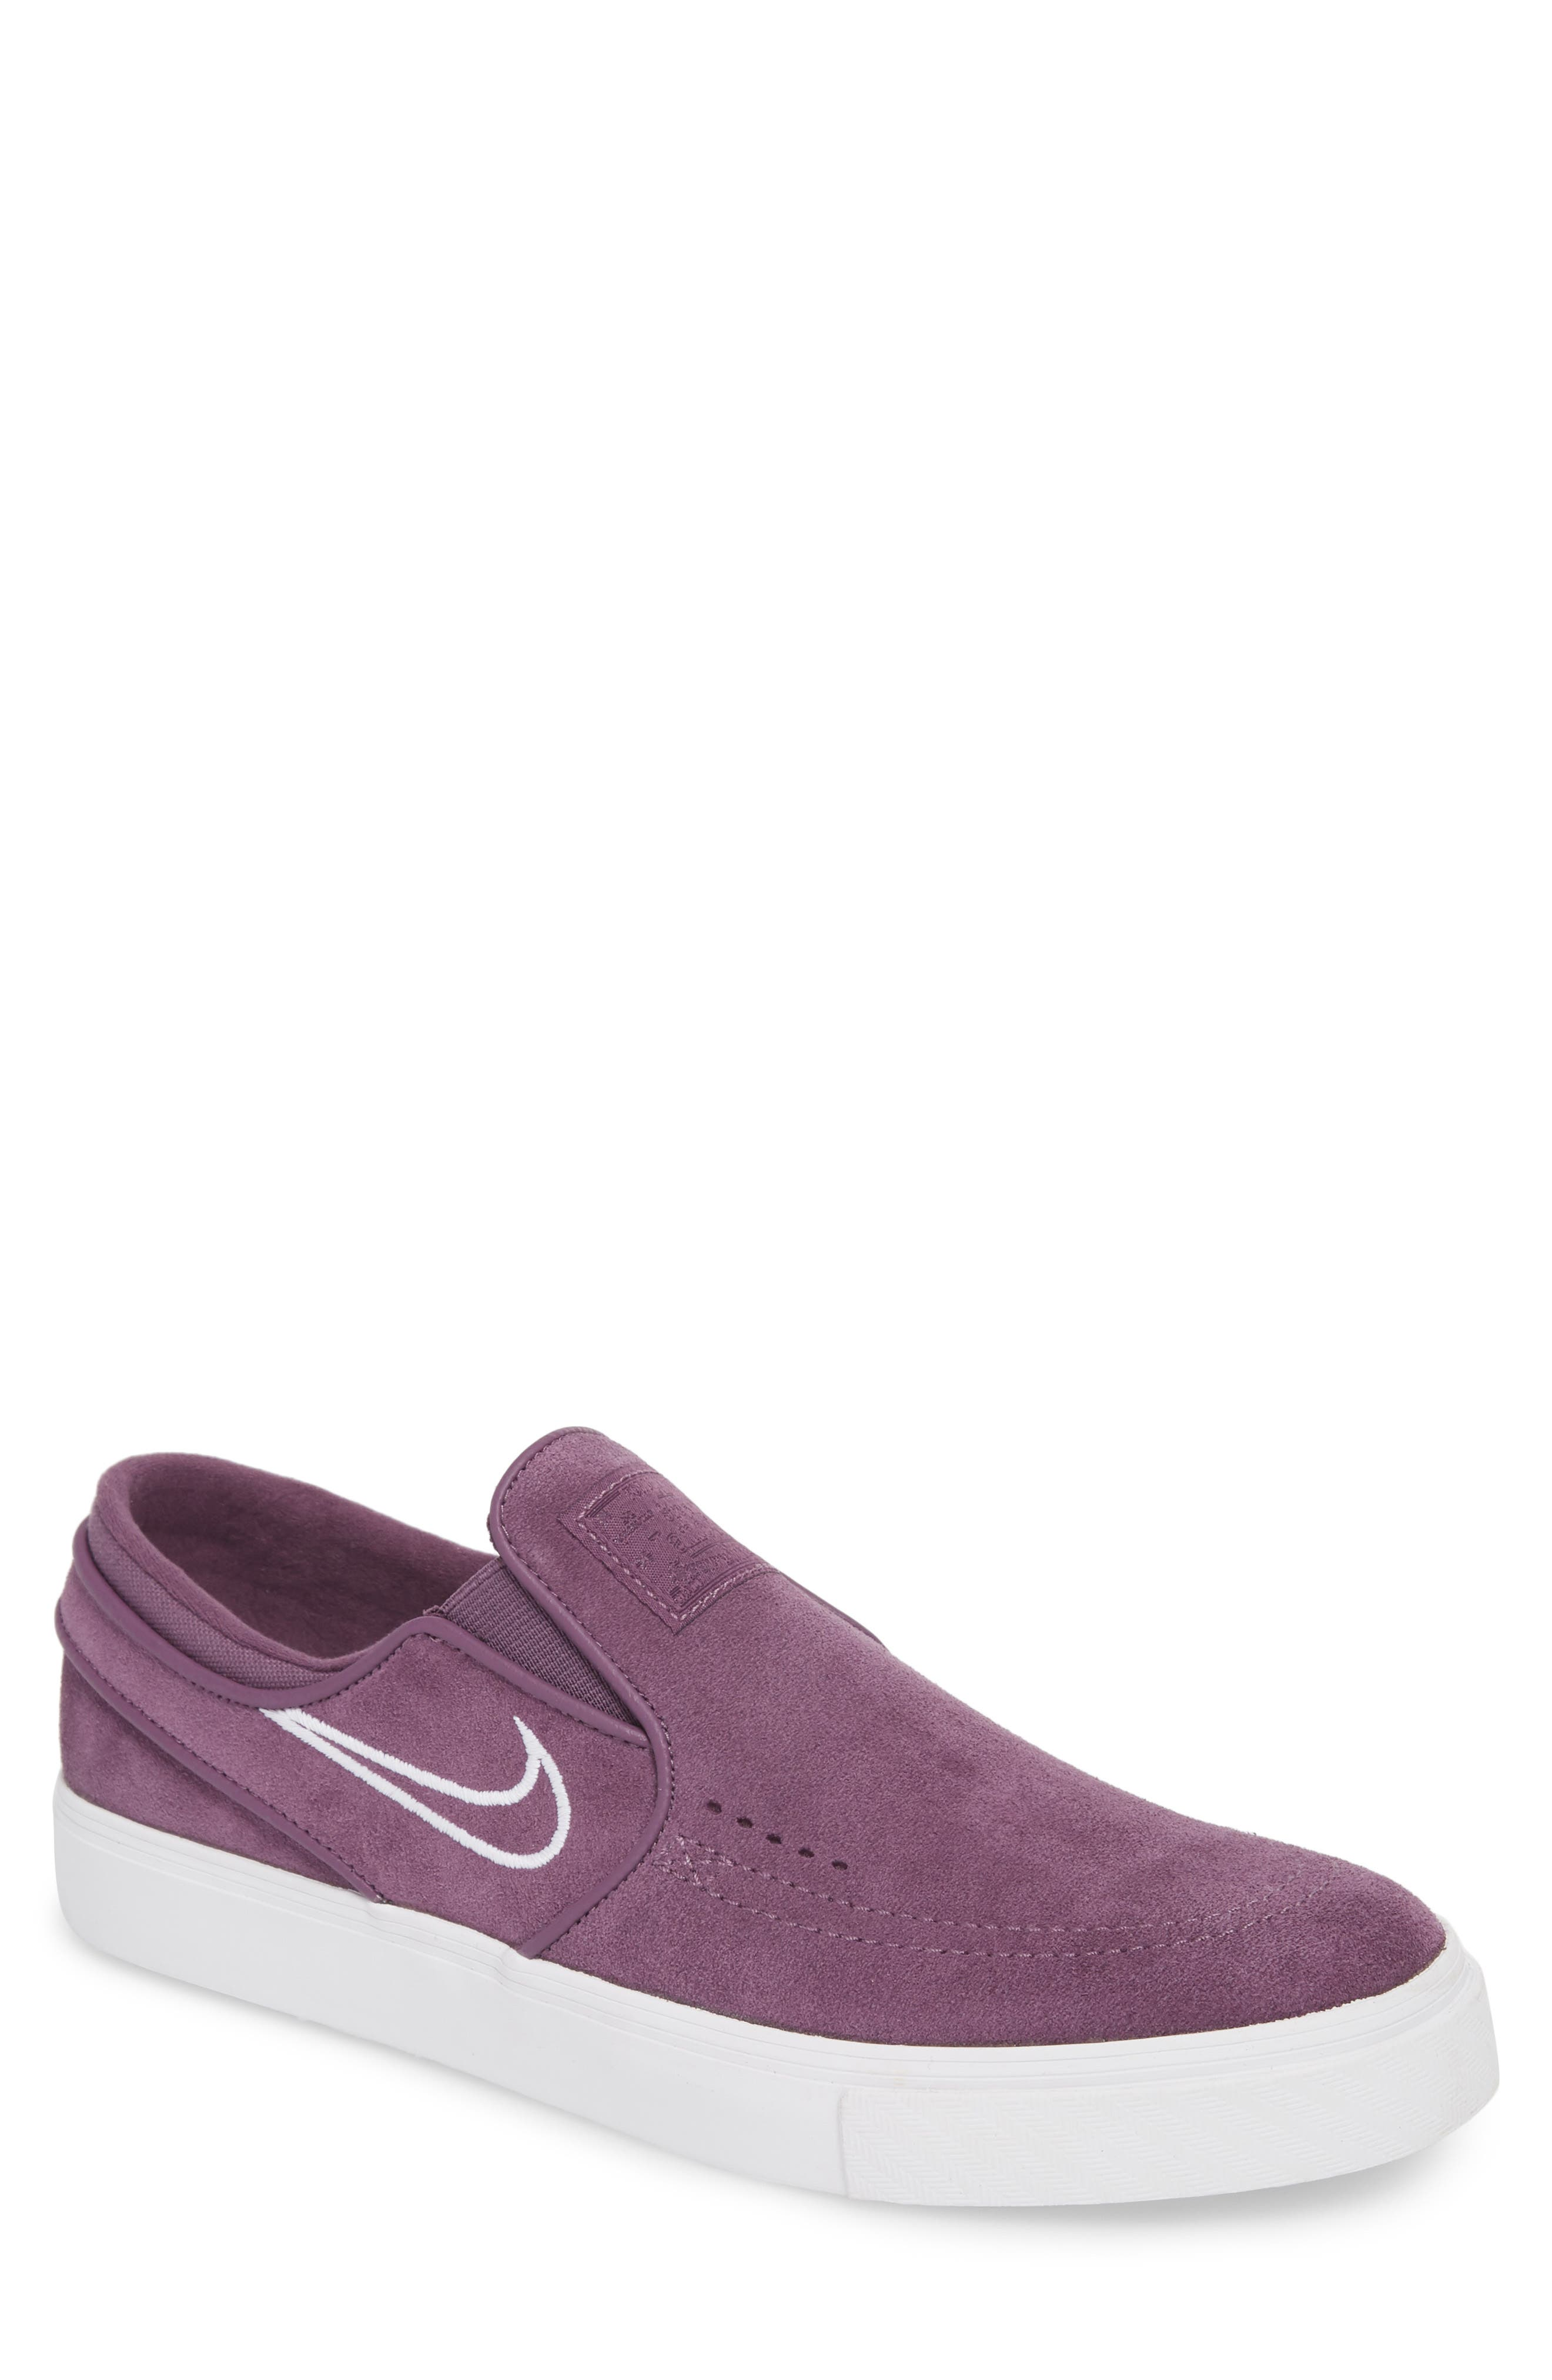 Zoom Stefan Janoski Slip-On,                         Main,                         color, Pro Purple/ White/ Grey